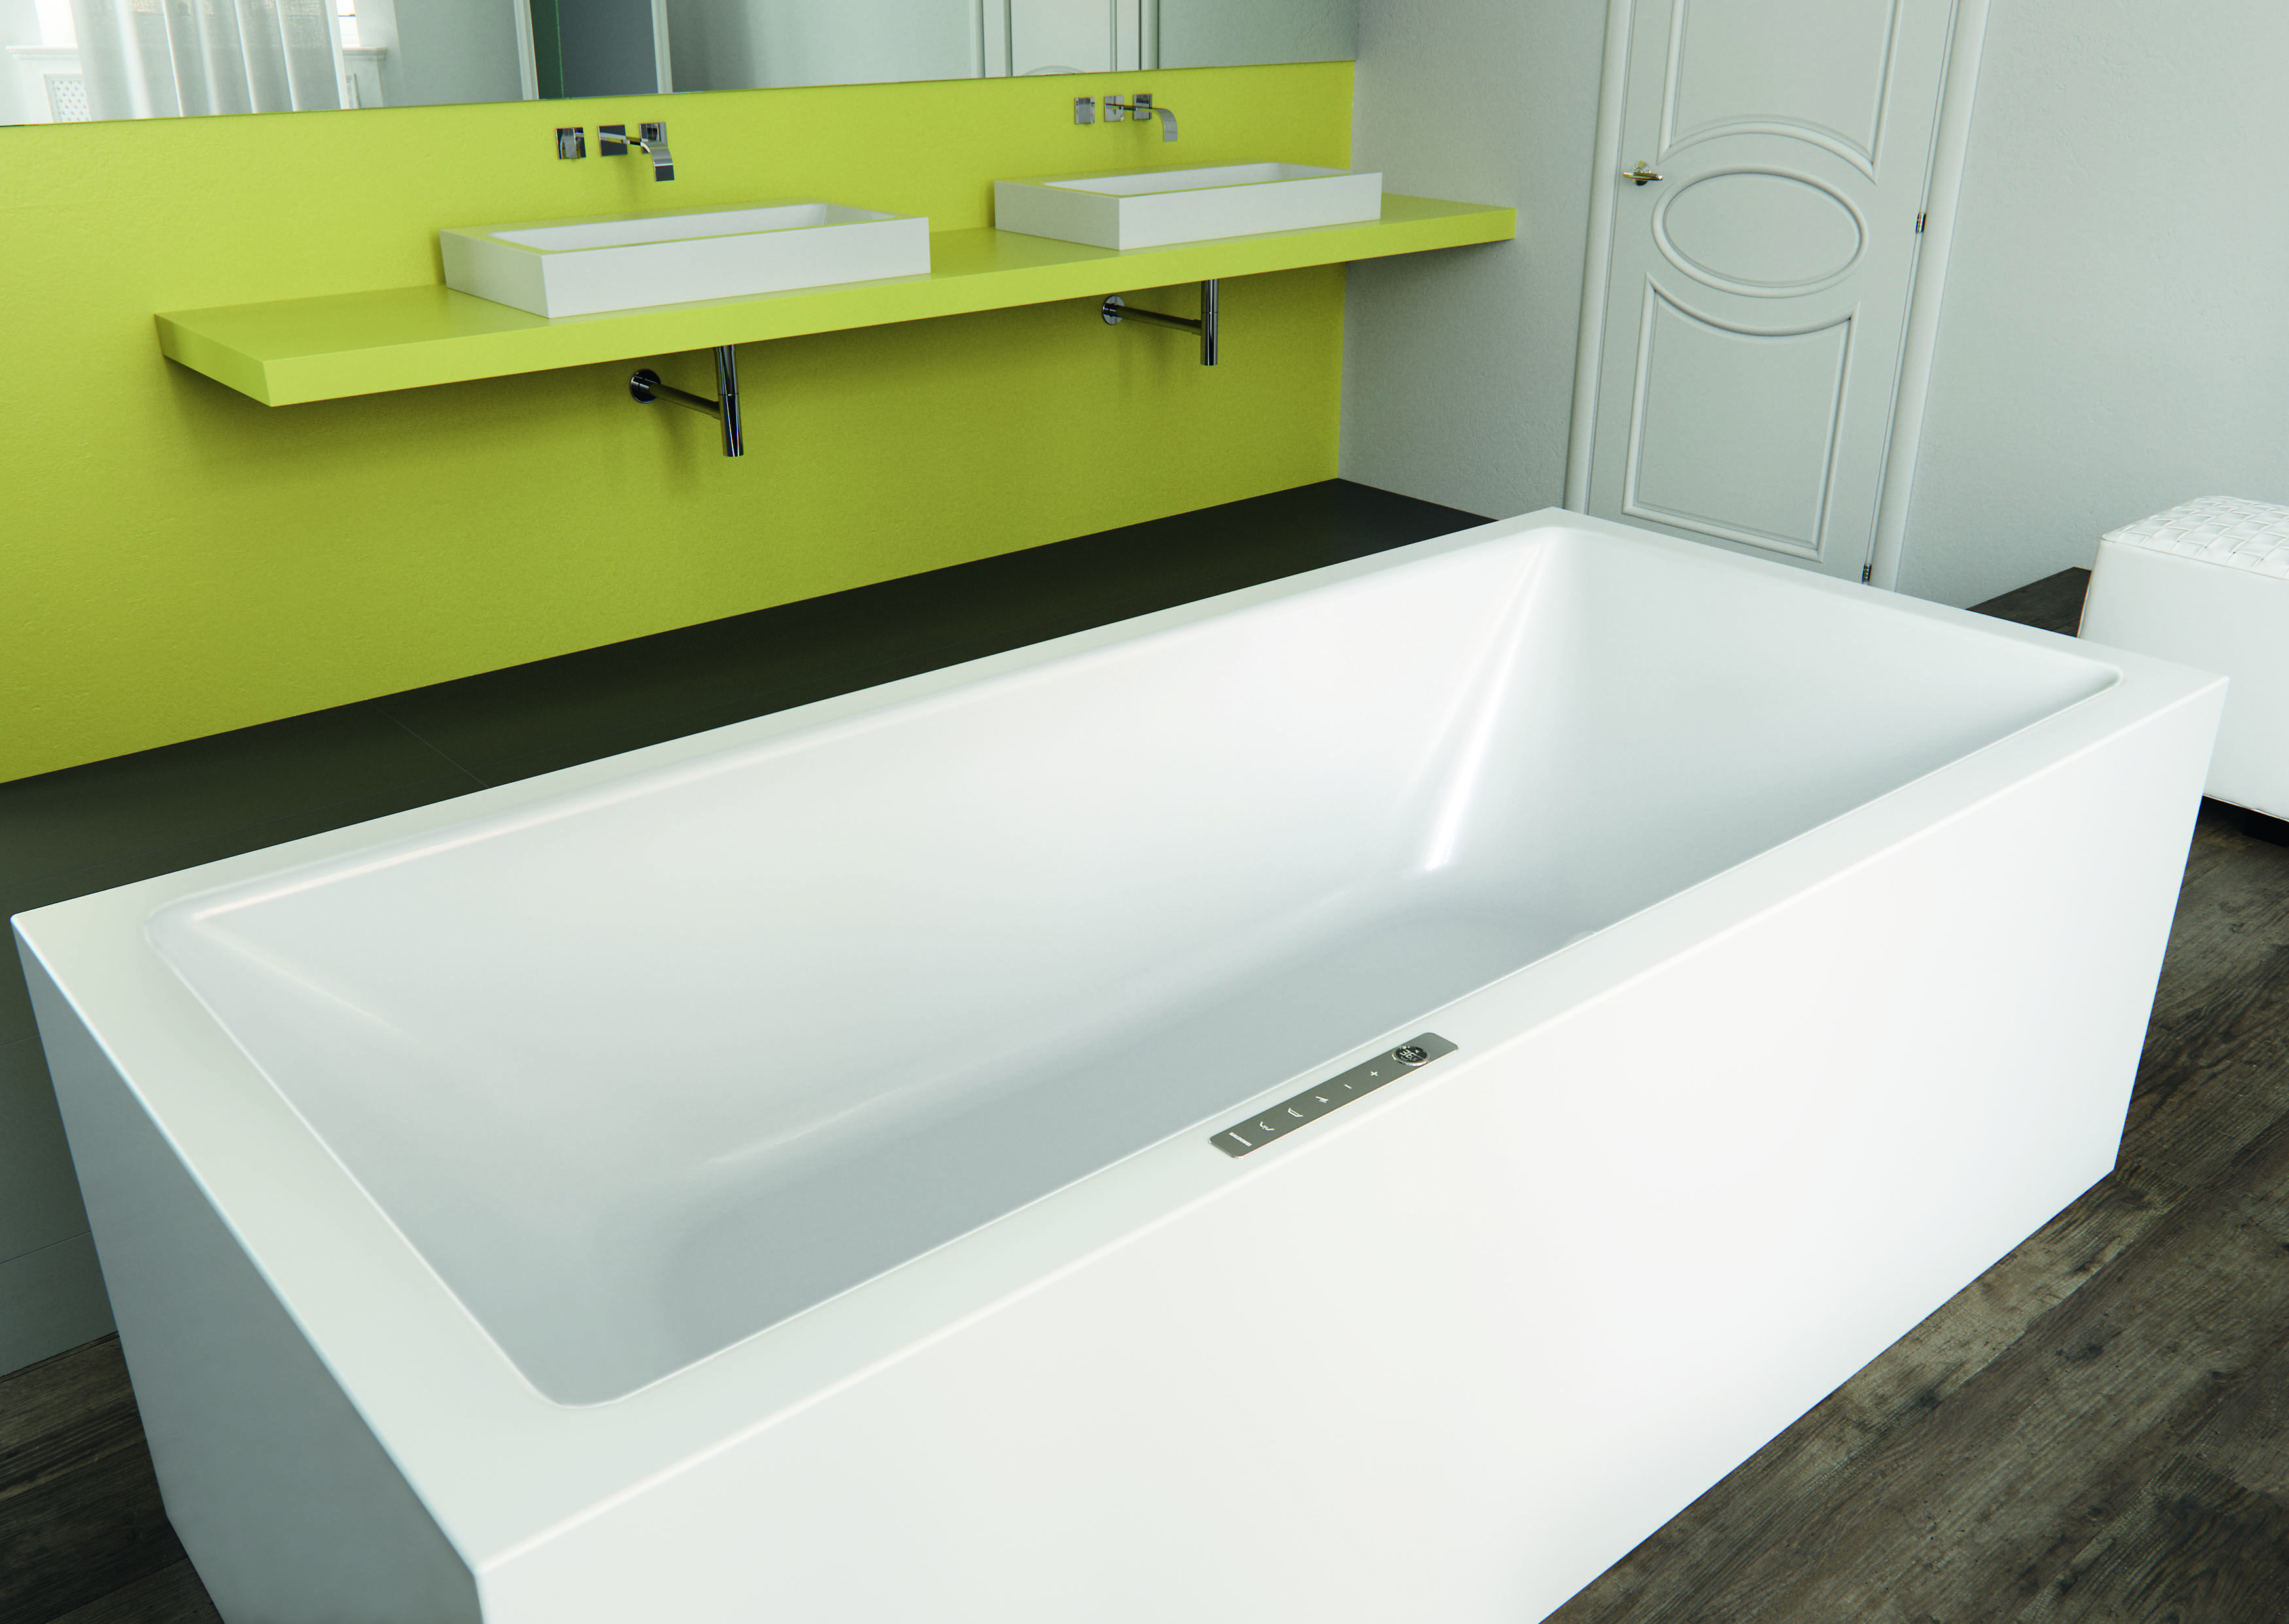 The Seamless Shape Of The Meisterstuck Conoduo Combines Free Standing Design With Excellent Bathroom Comfort To Produce The Perfect S Bathtub Whirlpool Tub Tub